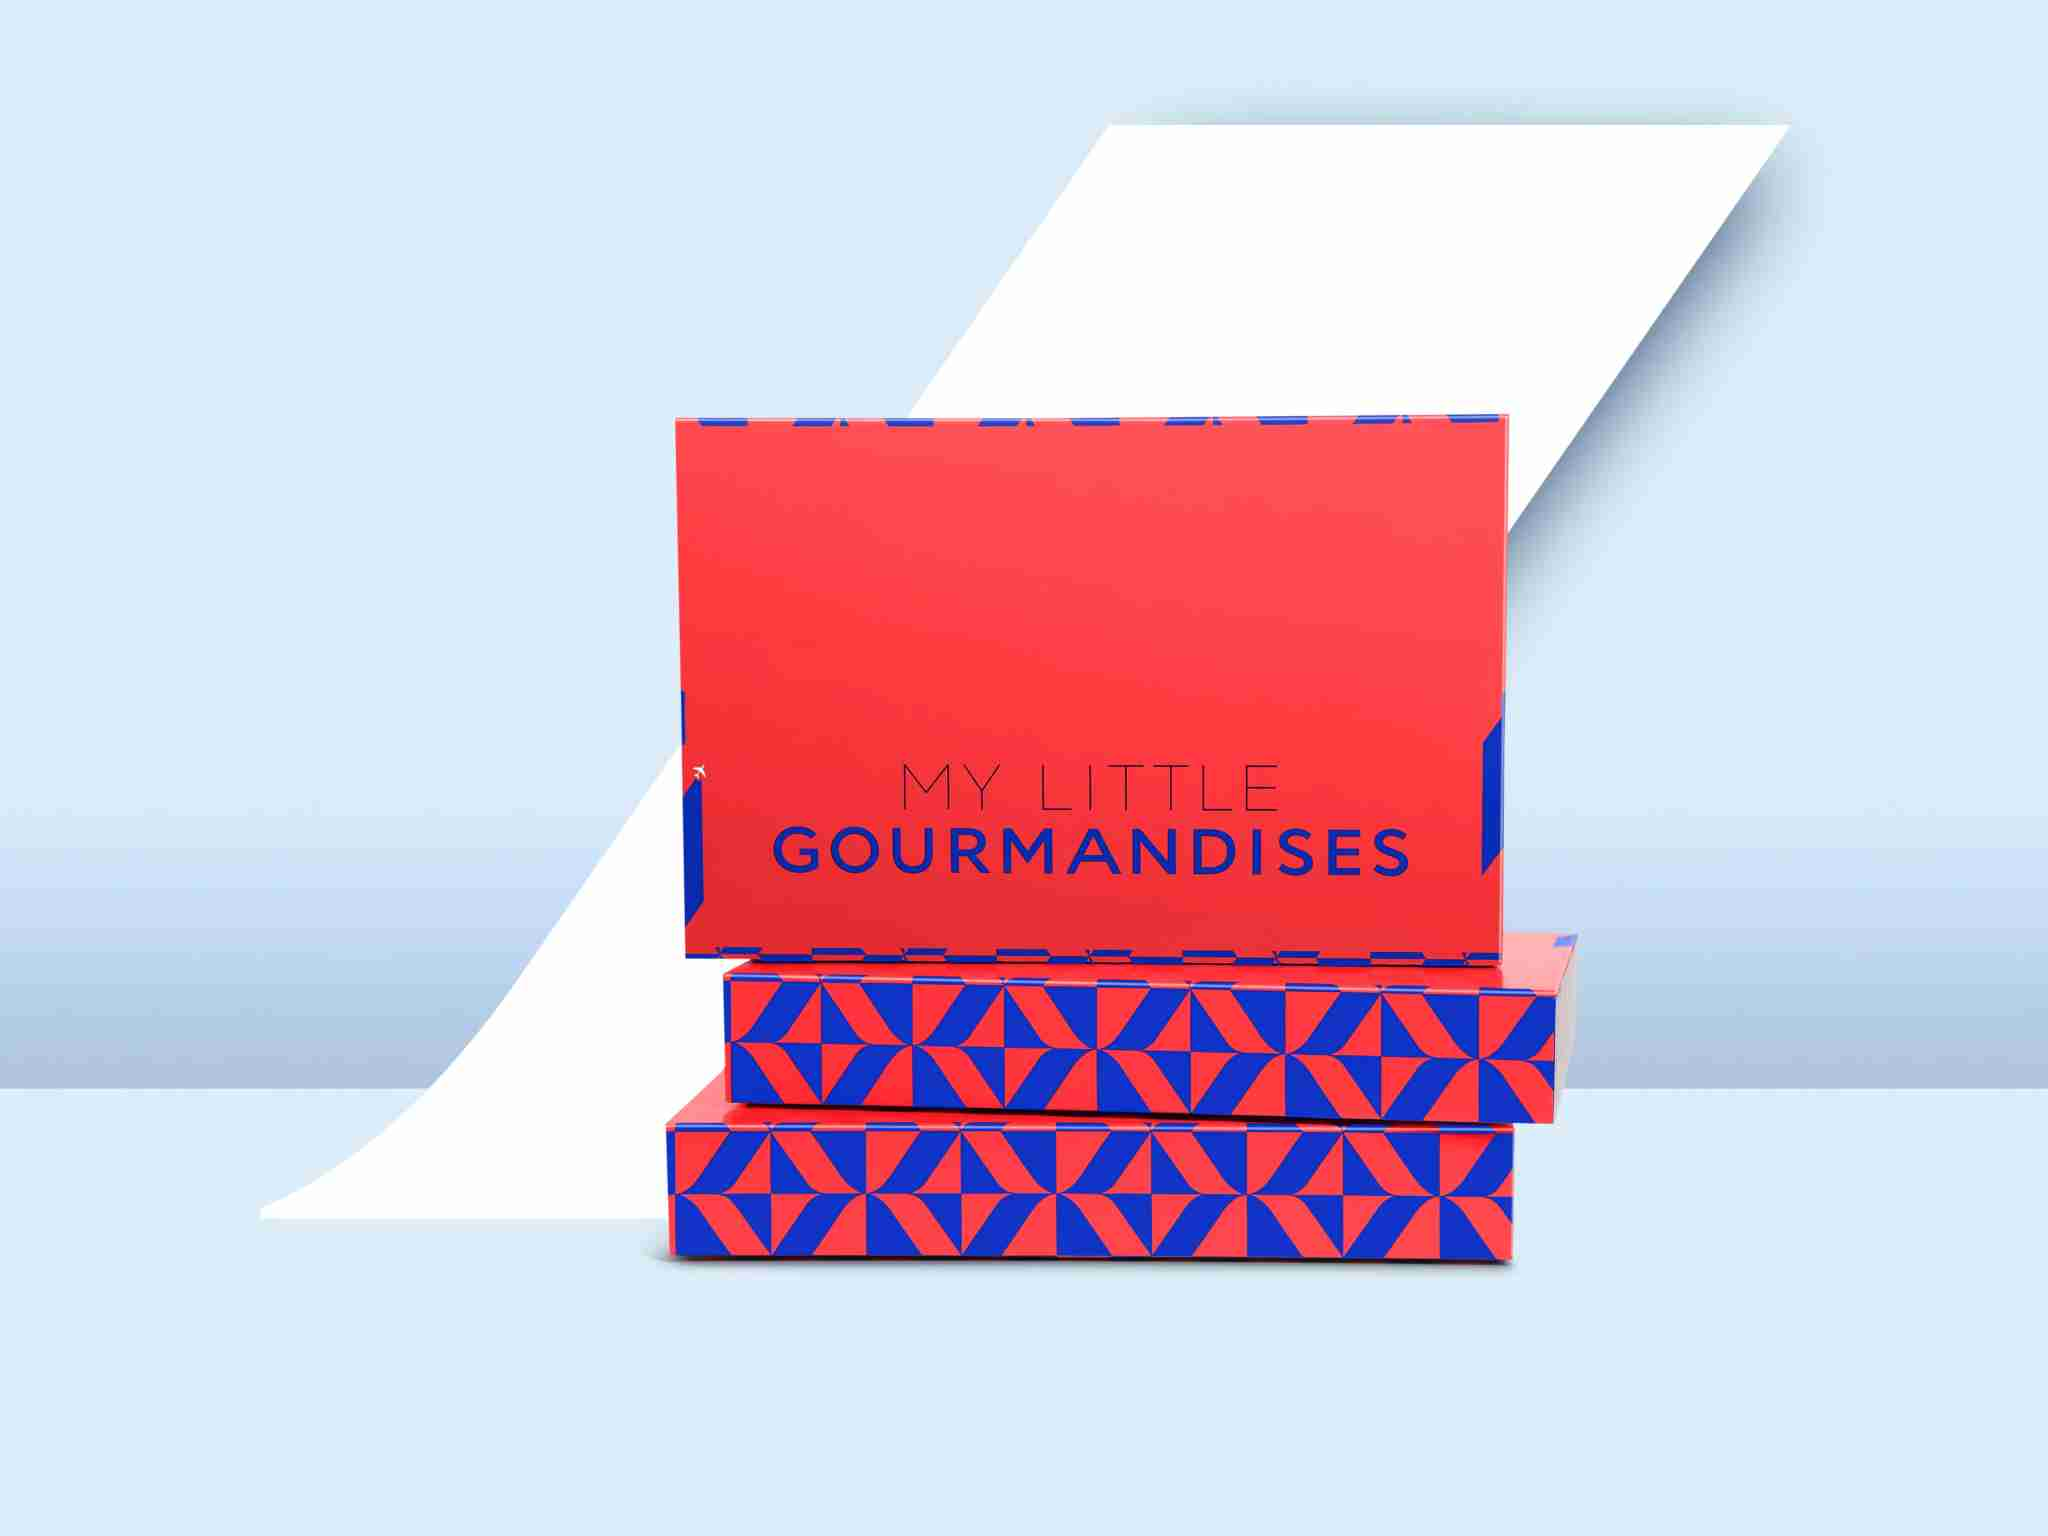 """Air France """"My Little Gourmandises"""" snack box (Photo courtesy of Air France)"""